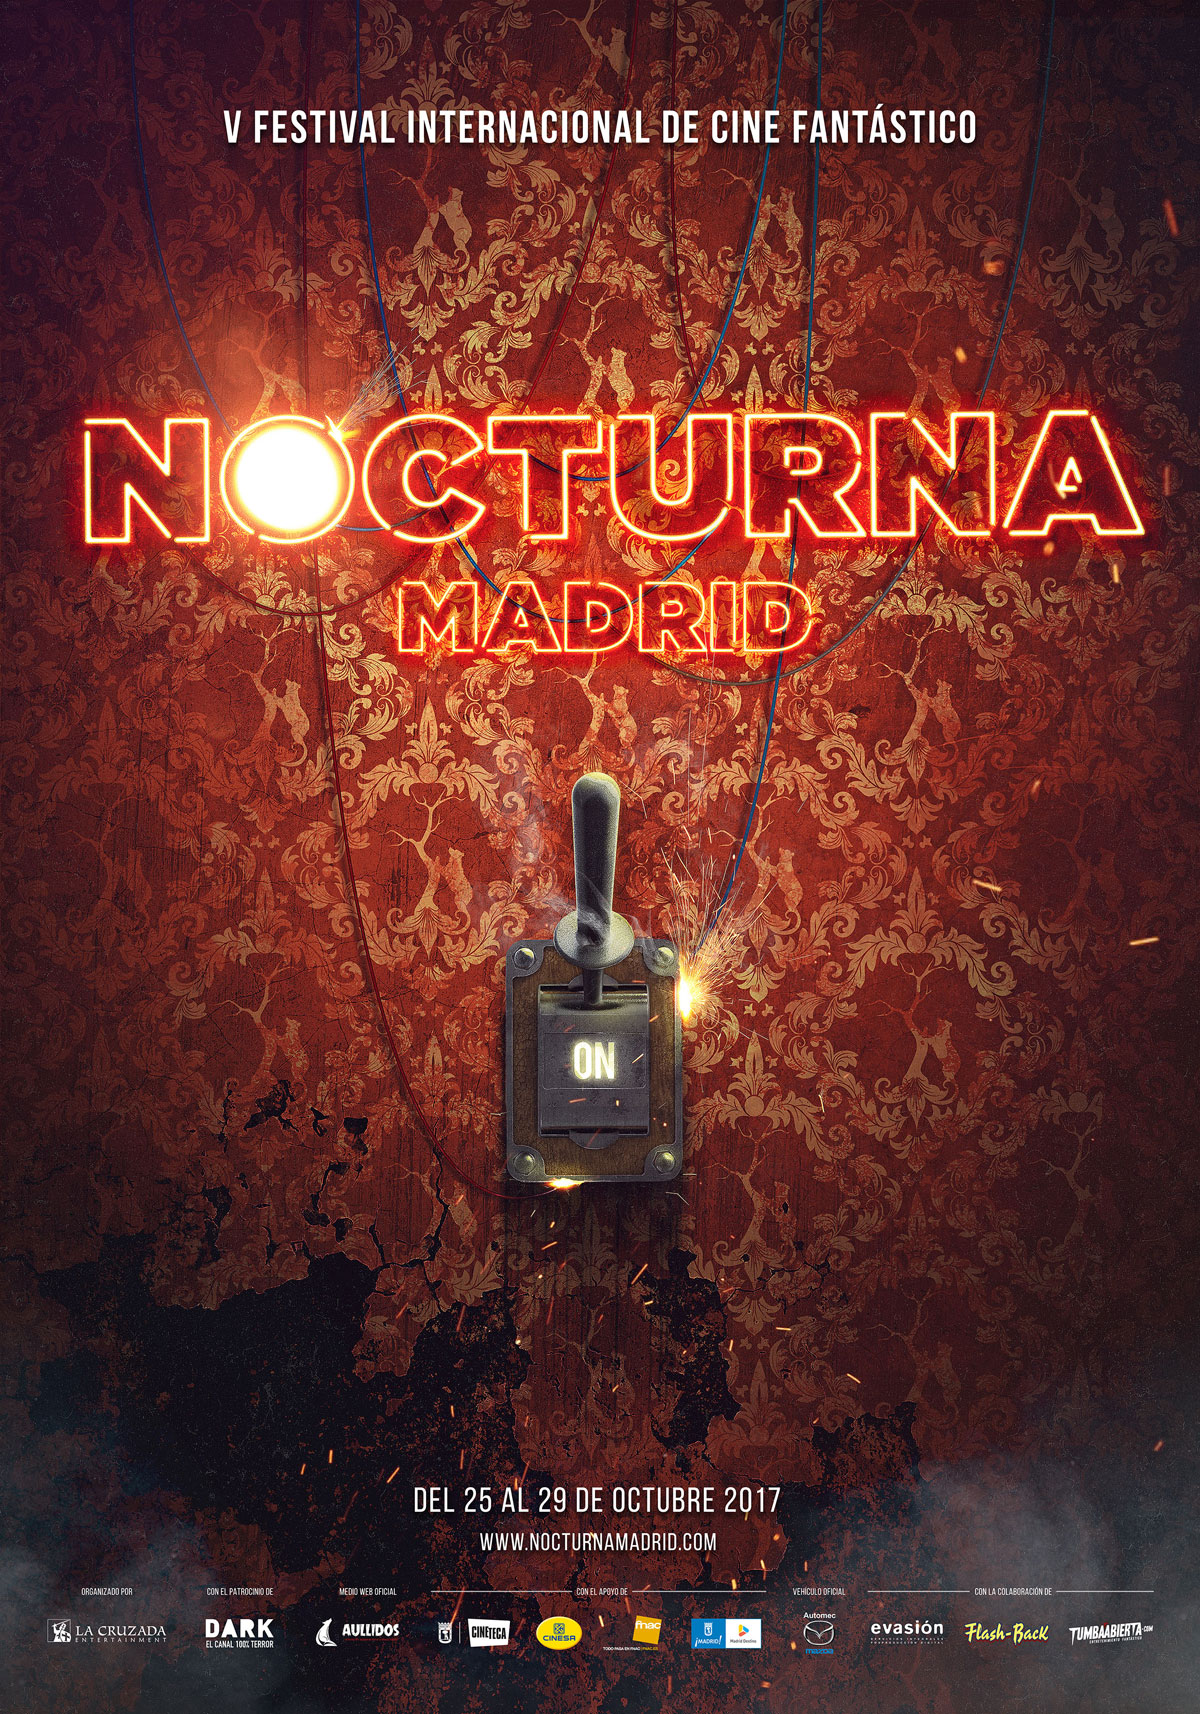 Nocturna Madrid 2017 poster